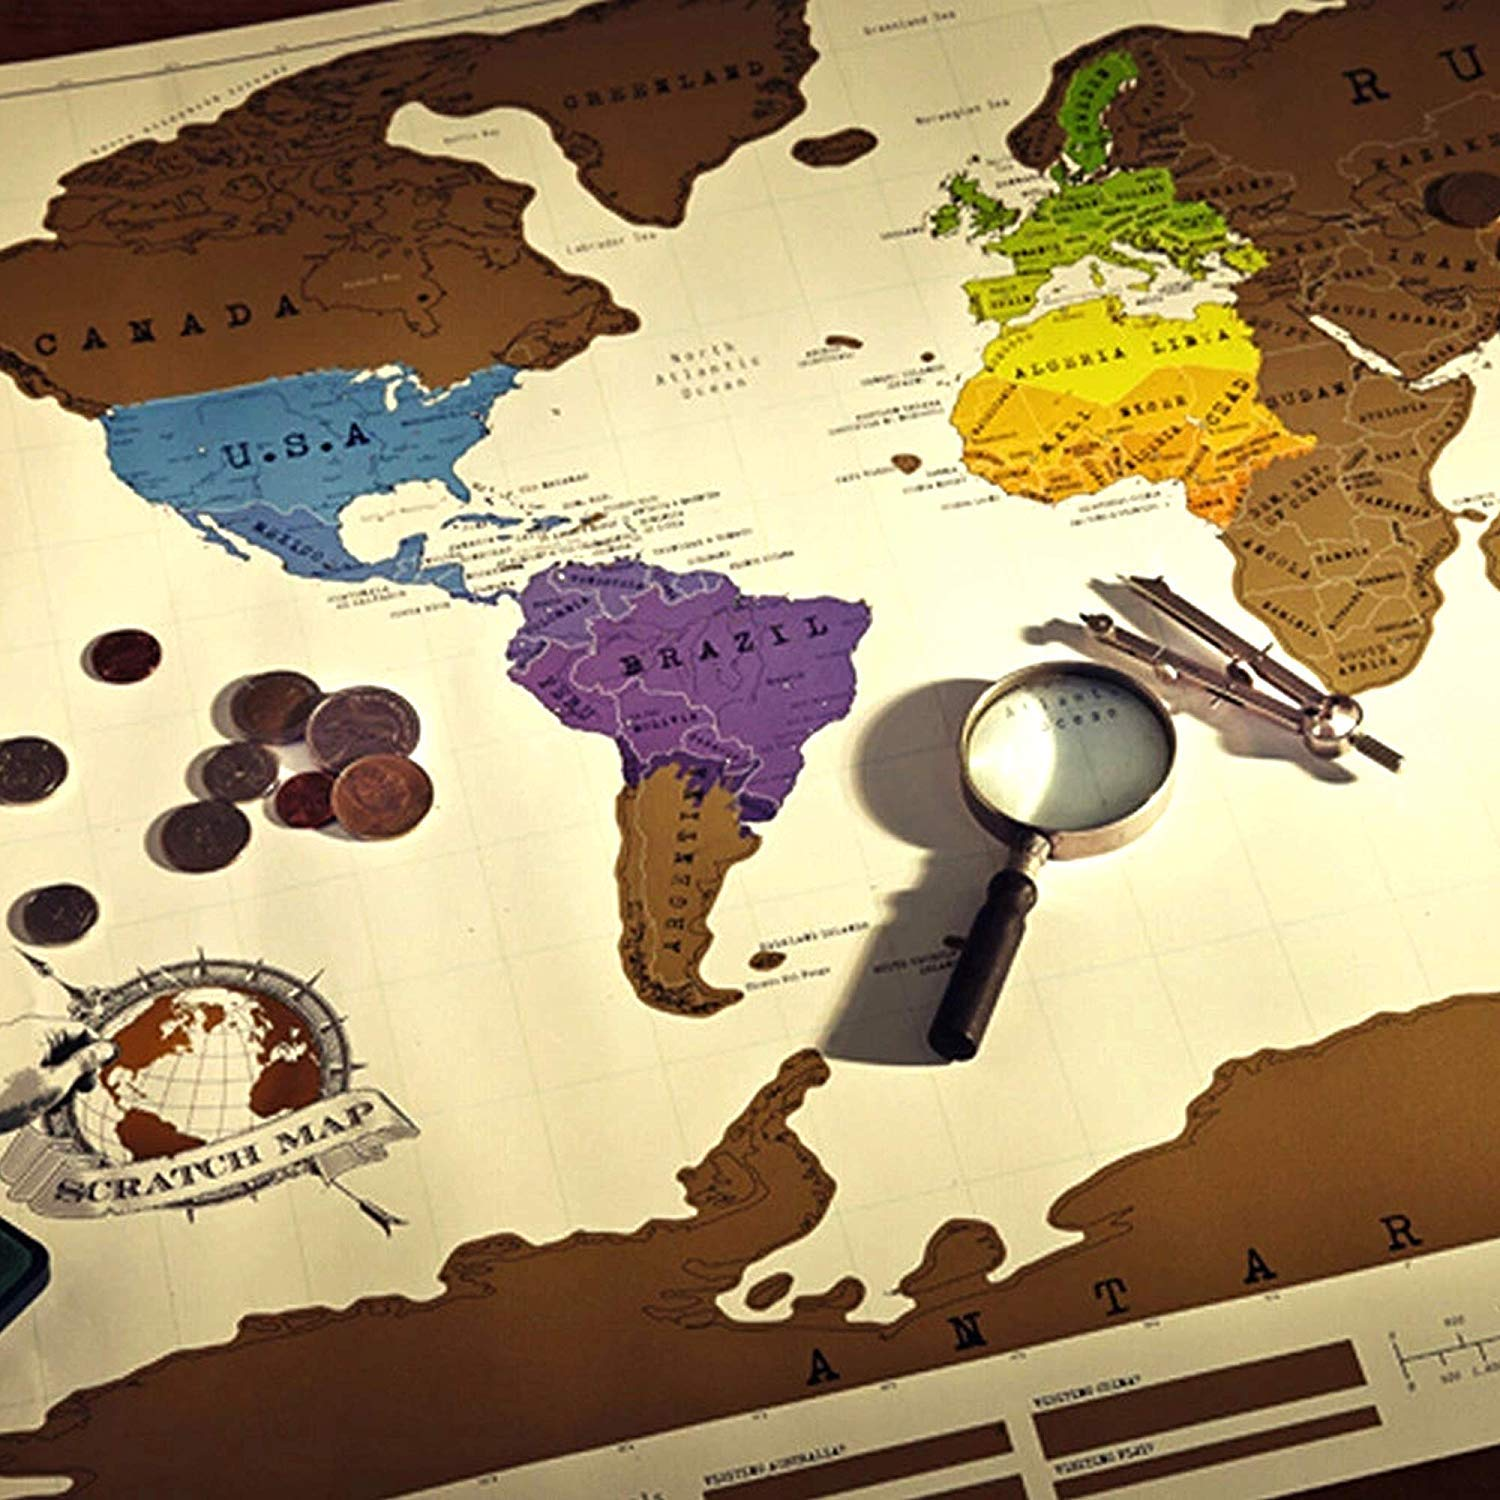 Fun Gift Vintage Gold Coated Foil Poster Luxury White Coated Paper Material Scratch Map World Map Traveler D/écor Wall Map